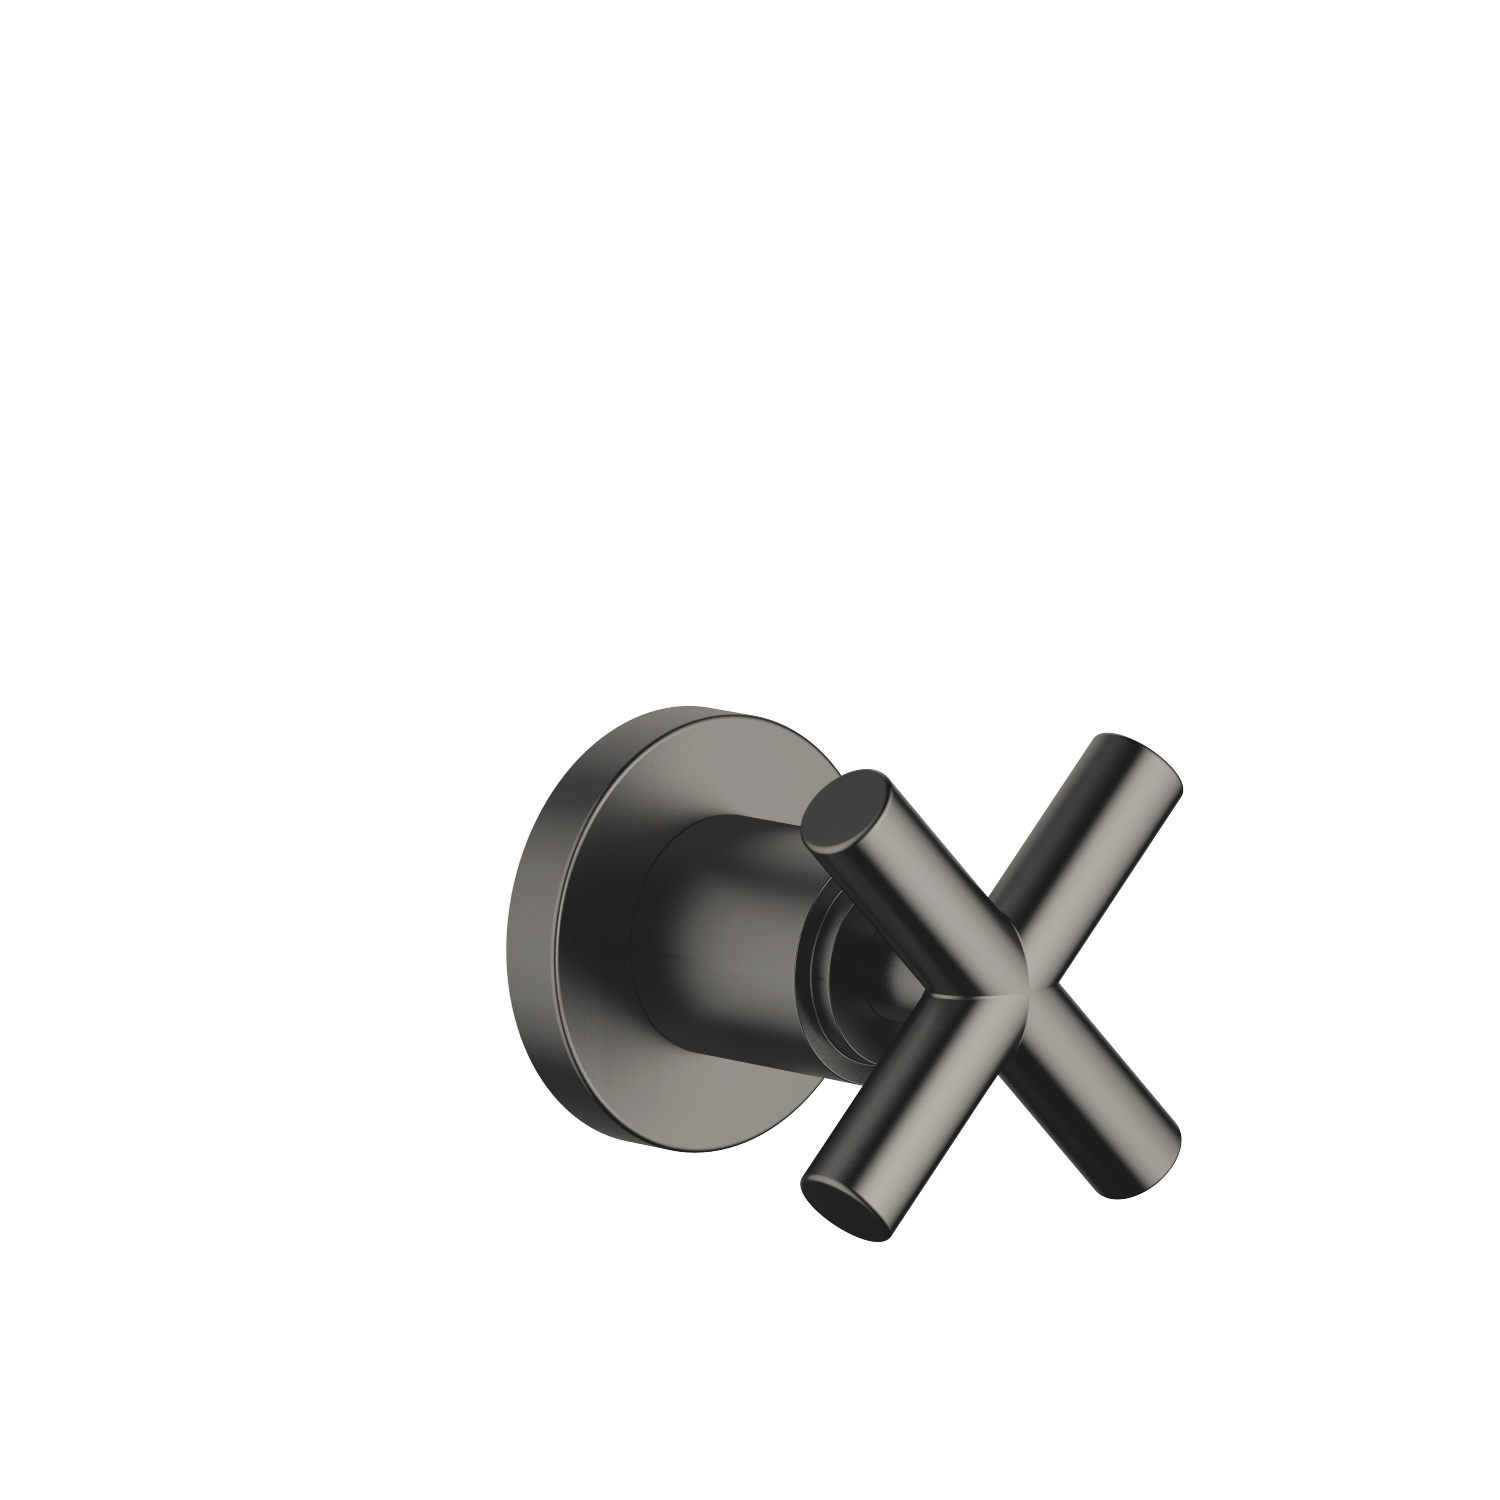 "Wall valve clockwise closing 3/4"" - Dark Platinum matt - 36 608 892-99"